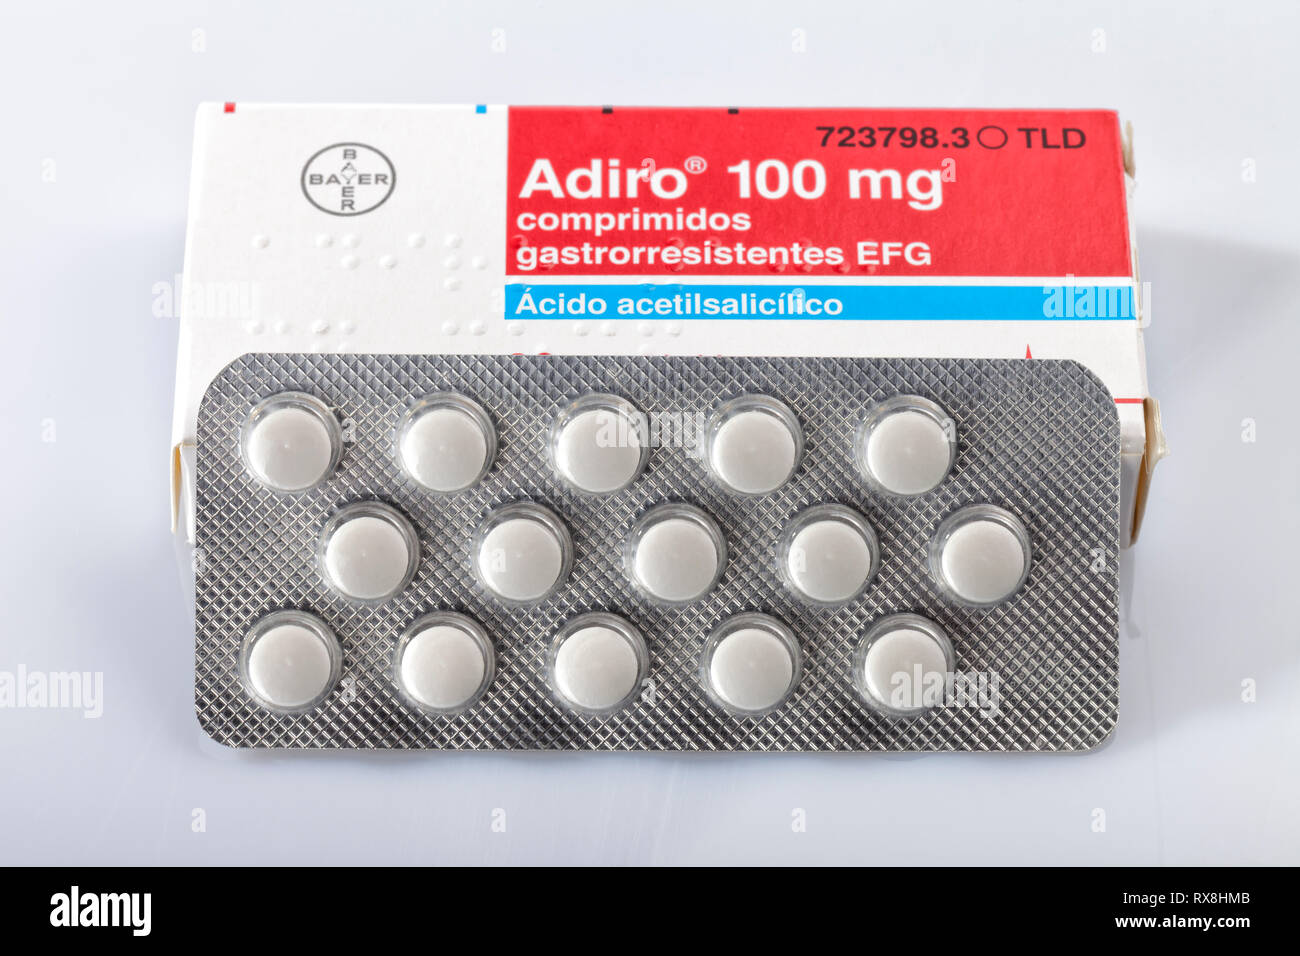 A box of acetylsalicylic acid Adiro tablets of the Bayer brand isolated on white. Infantile aspirin. Photo taken in Madrid, Spain, on March 8, 2019. - Stock Image